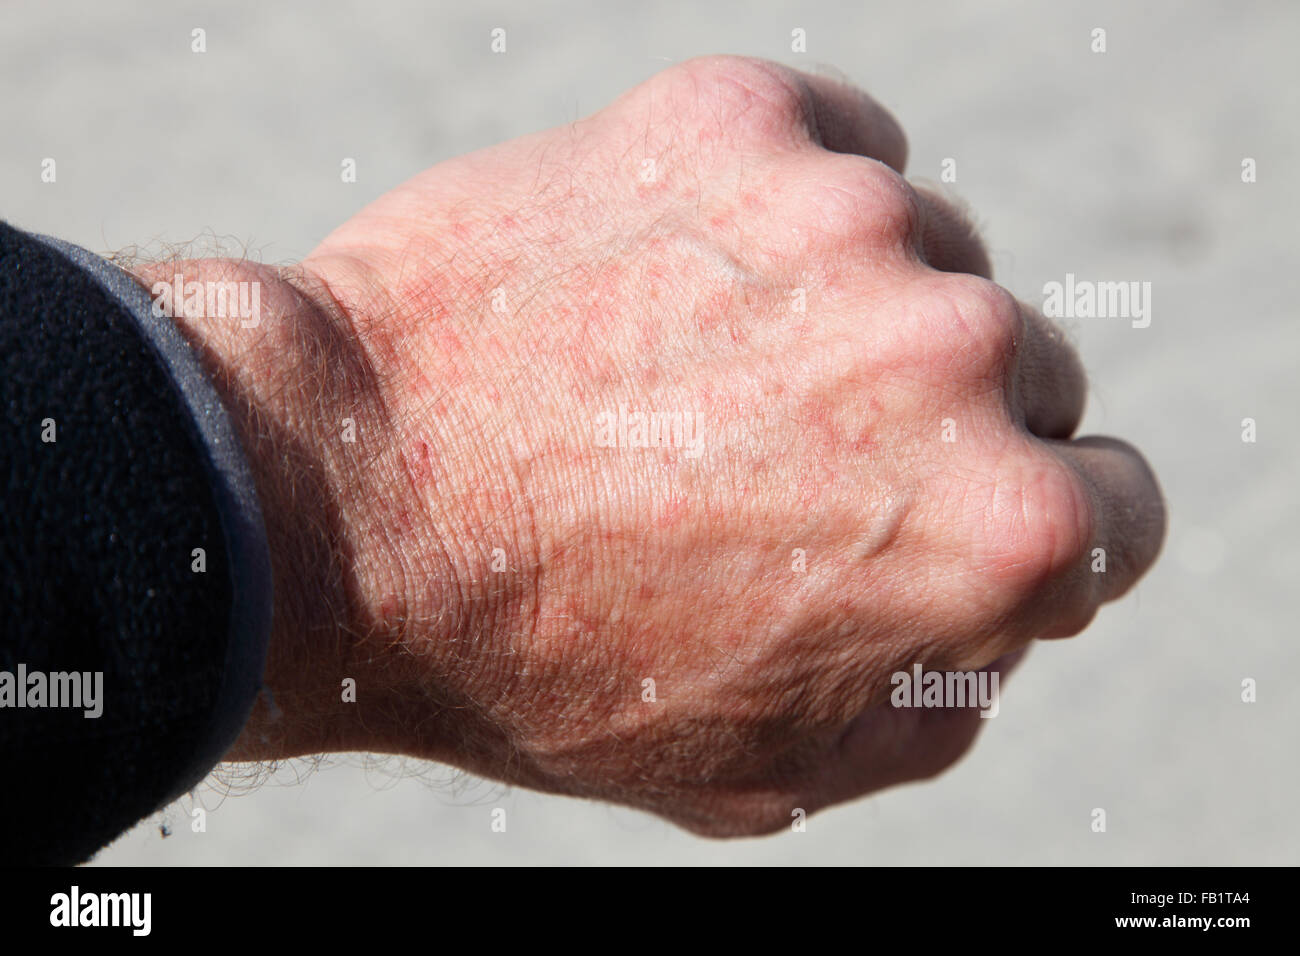 insect bites stock photos amp insect bites stock images alamy